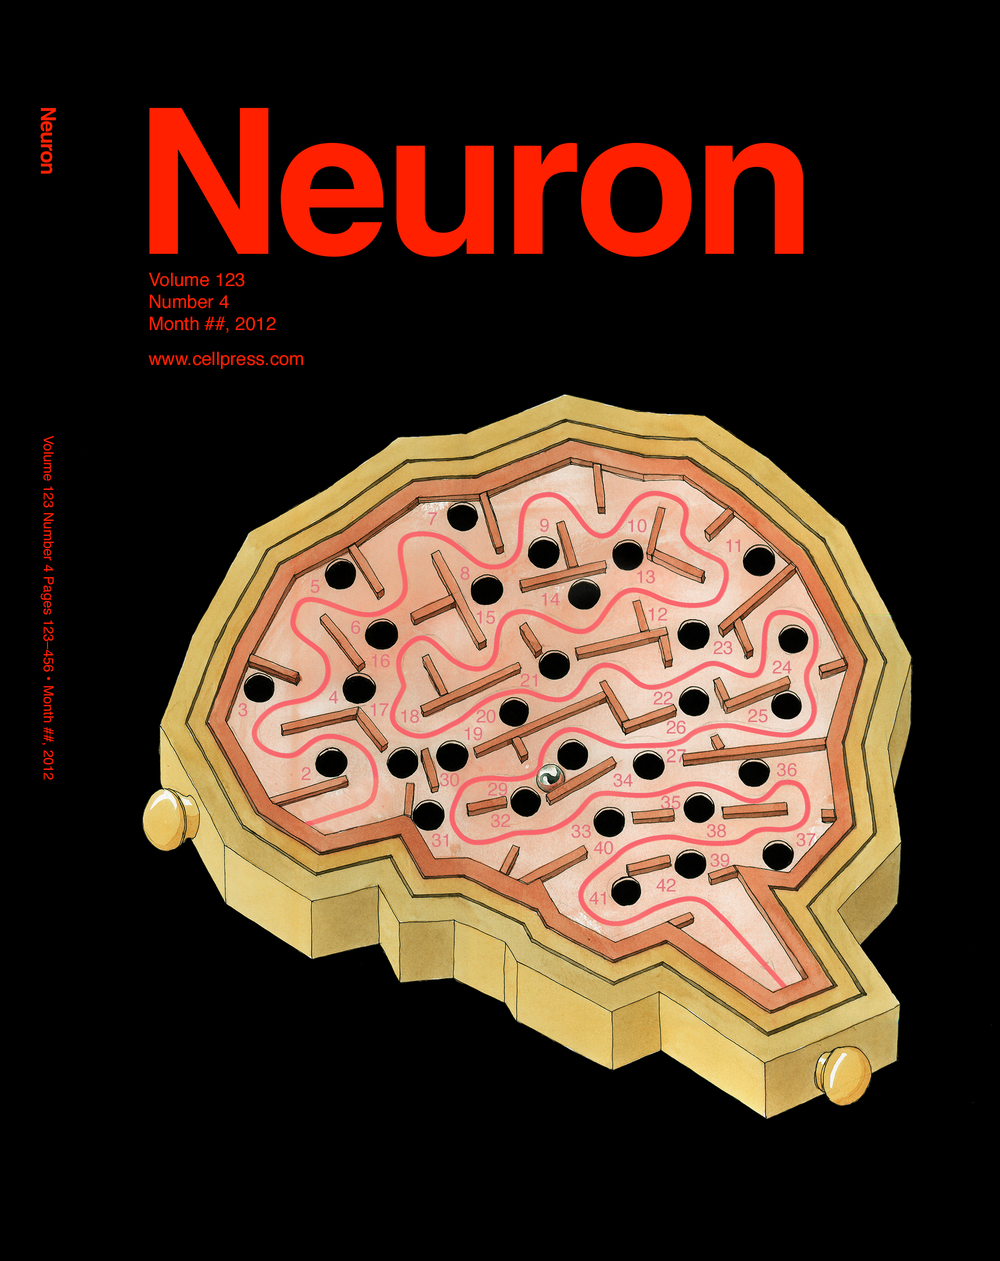 Cover - brain labyrnth v3 (small).jpg